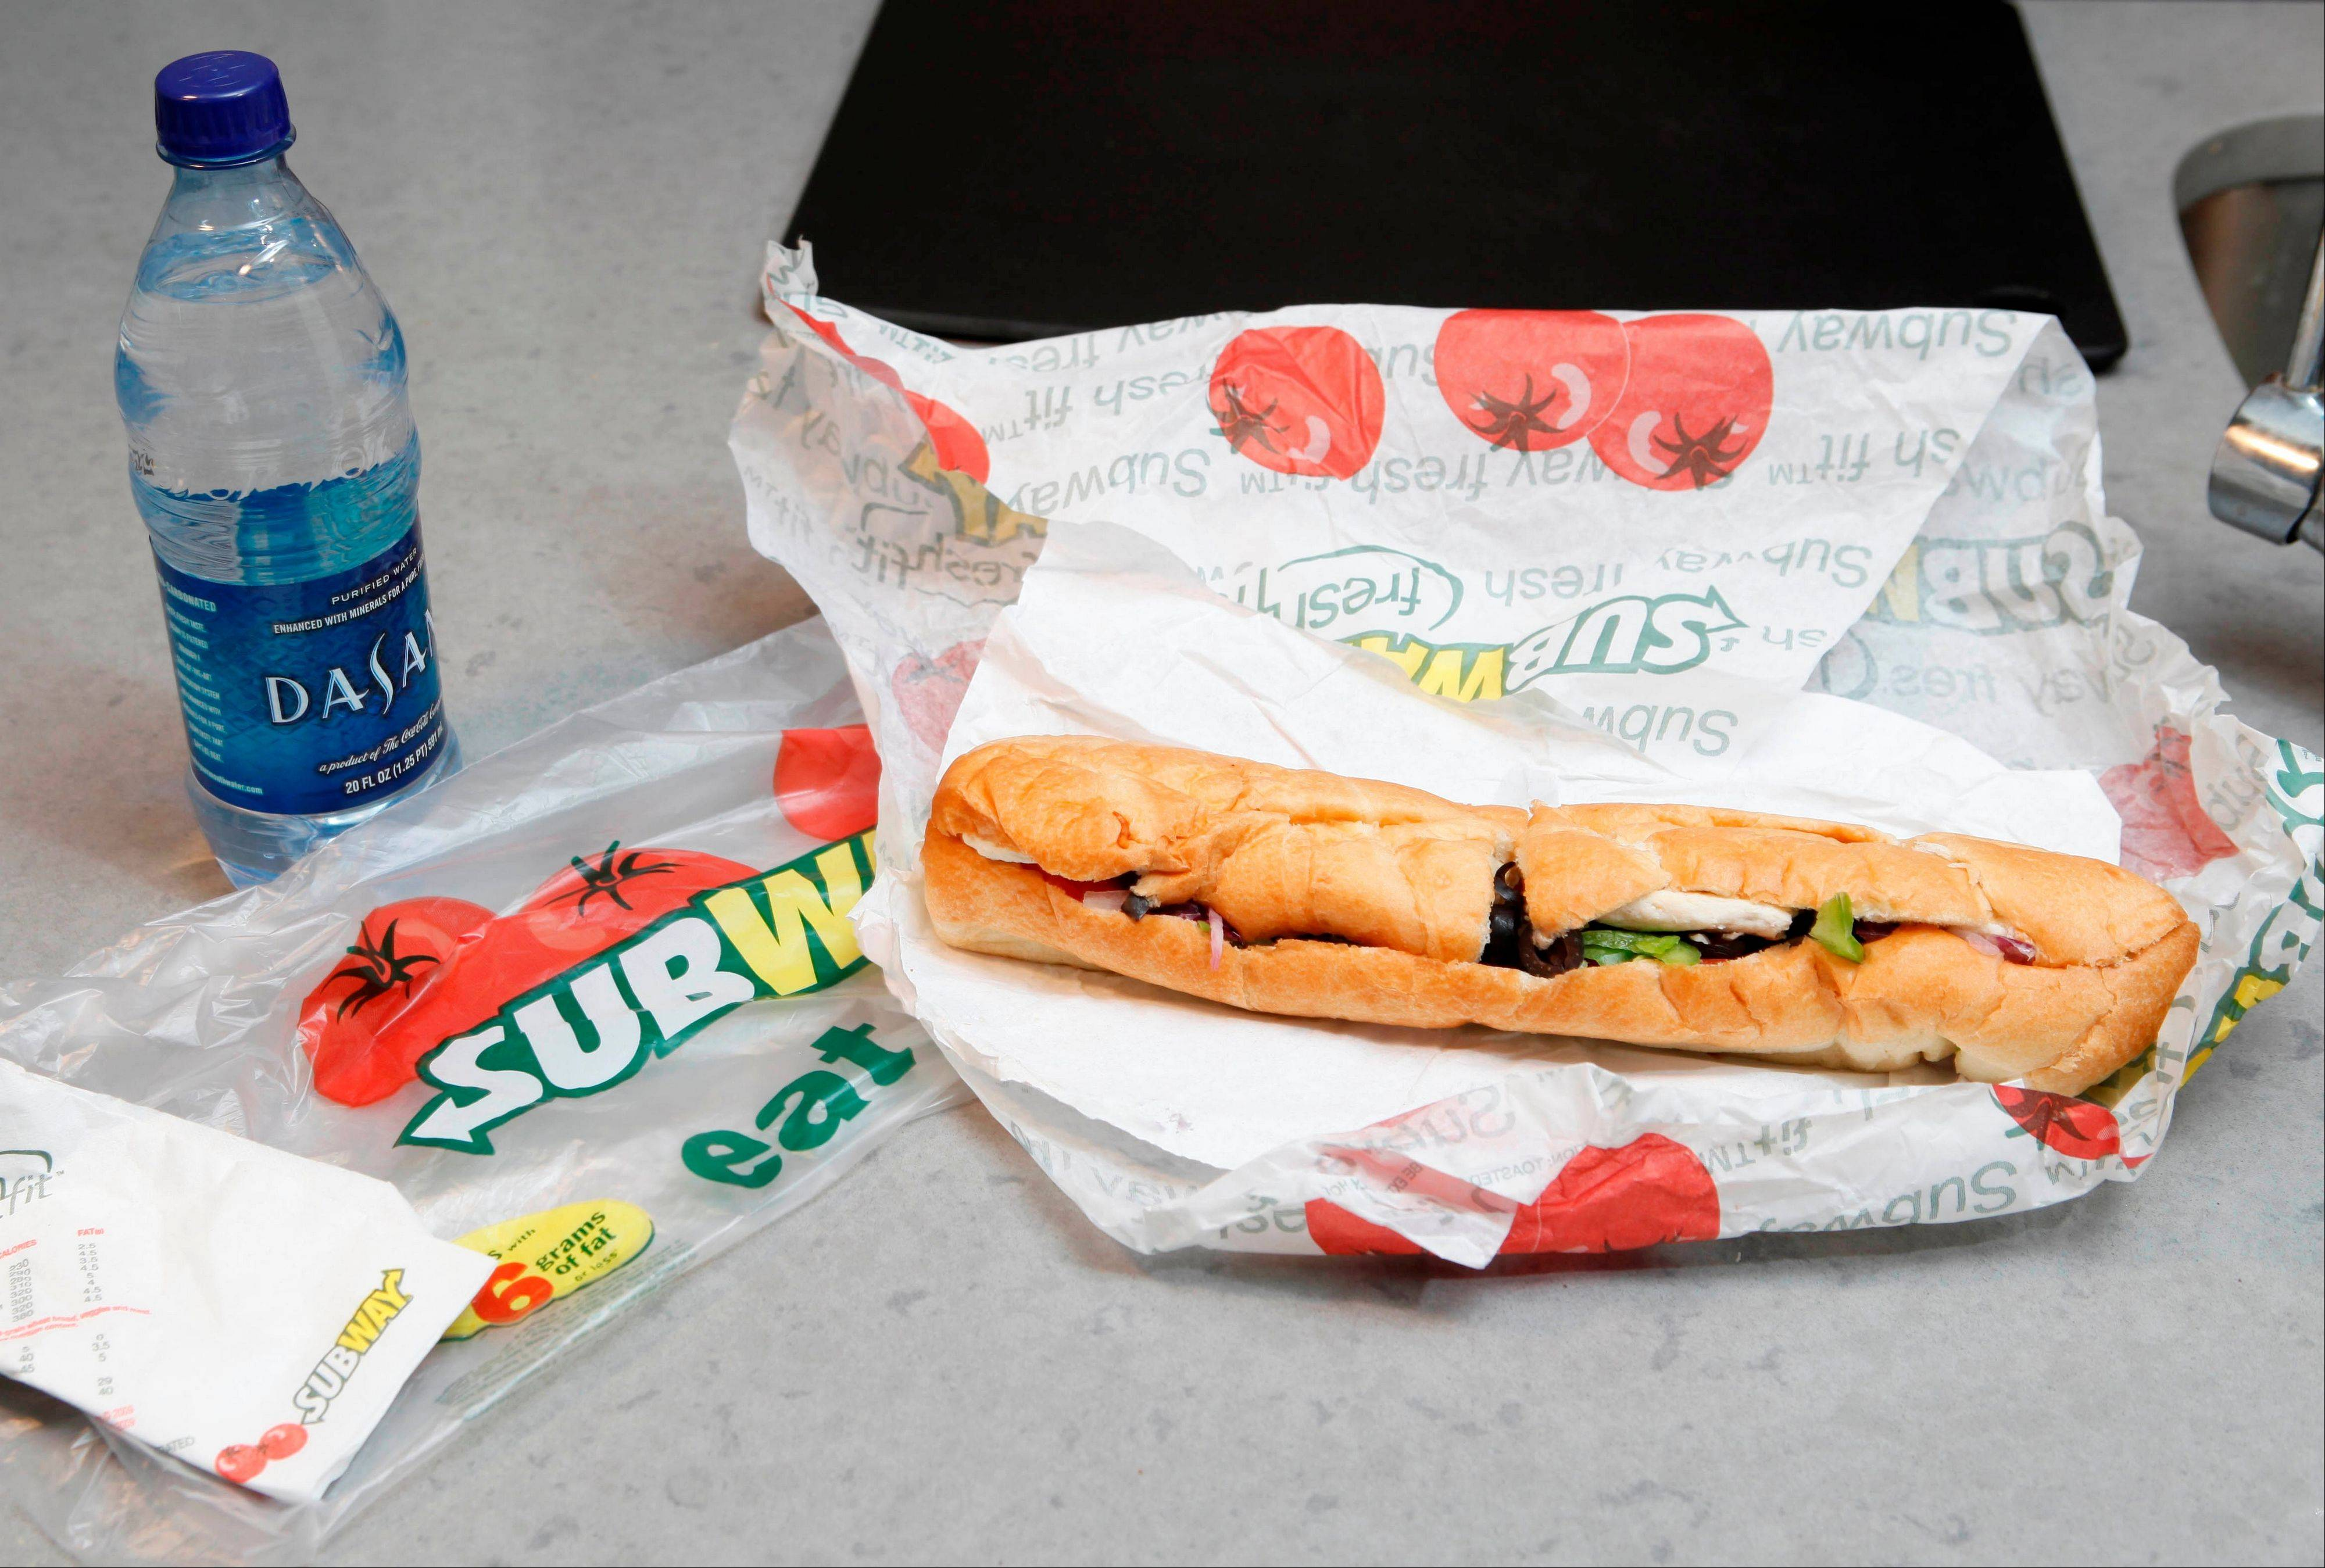 Subway, the world�s largest fast food chain, is facing criticism after an Australian man posted a picture on the company�s Facebook page on Jan. 16 of one of its famous sandwiches next to a tape measure that seems to shows it�s not as long as promised. Now Subway is being sued by two men in New Jersey over the issue.